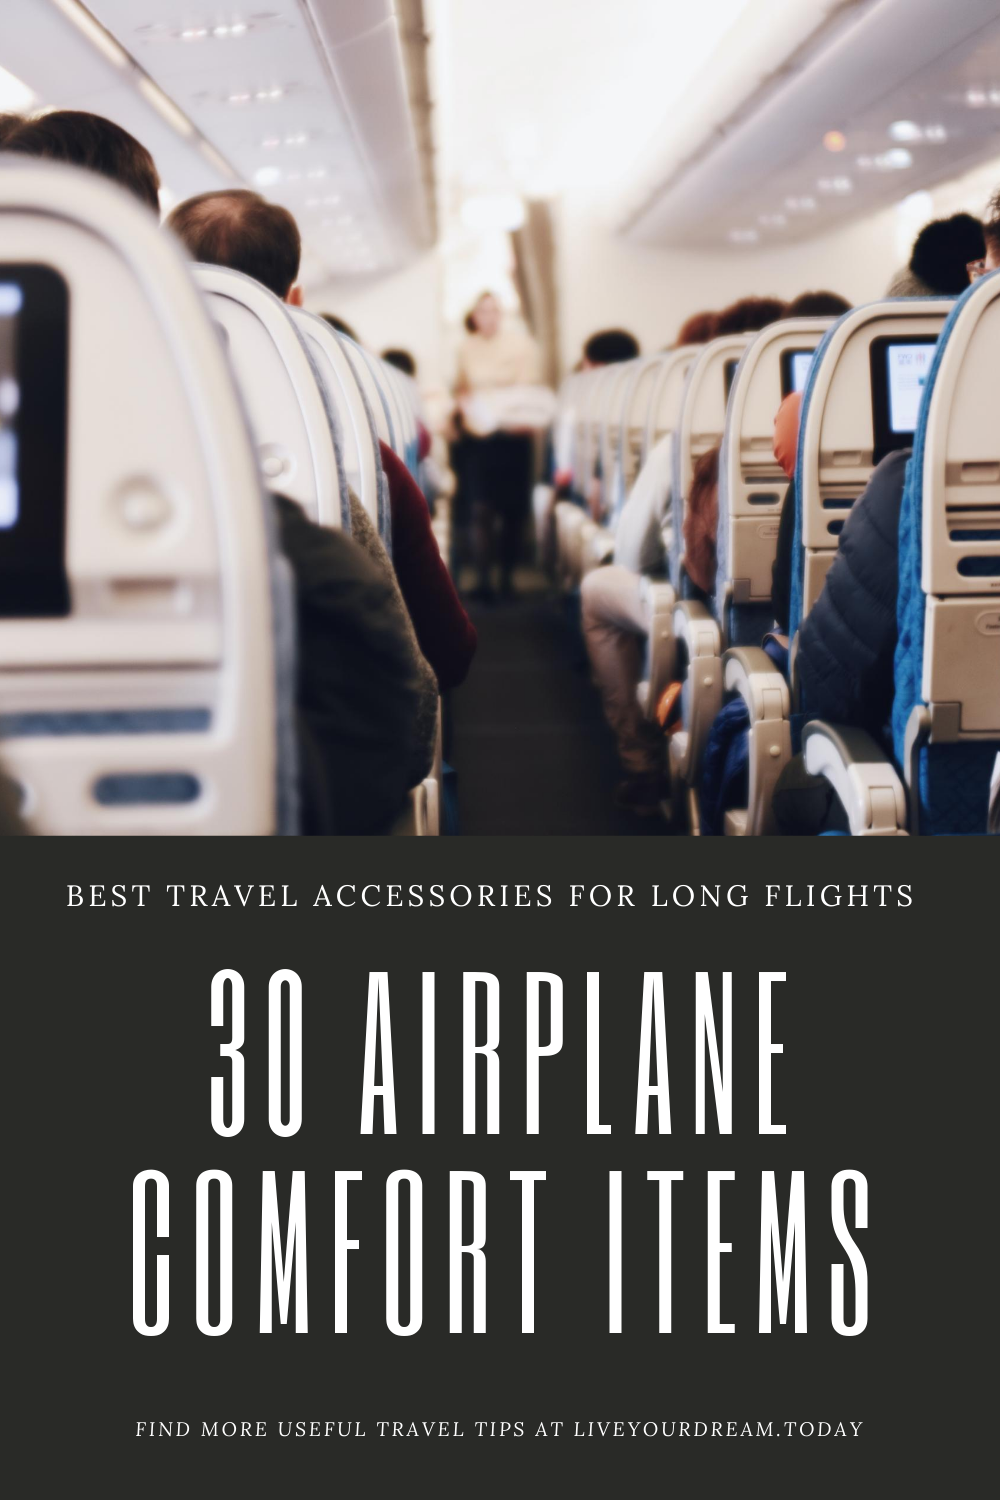 airplane comfort items for long haul flights